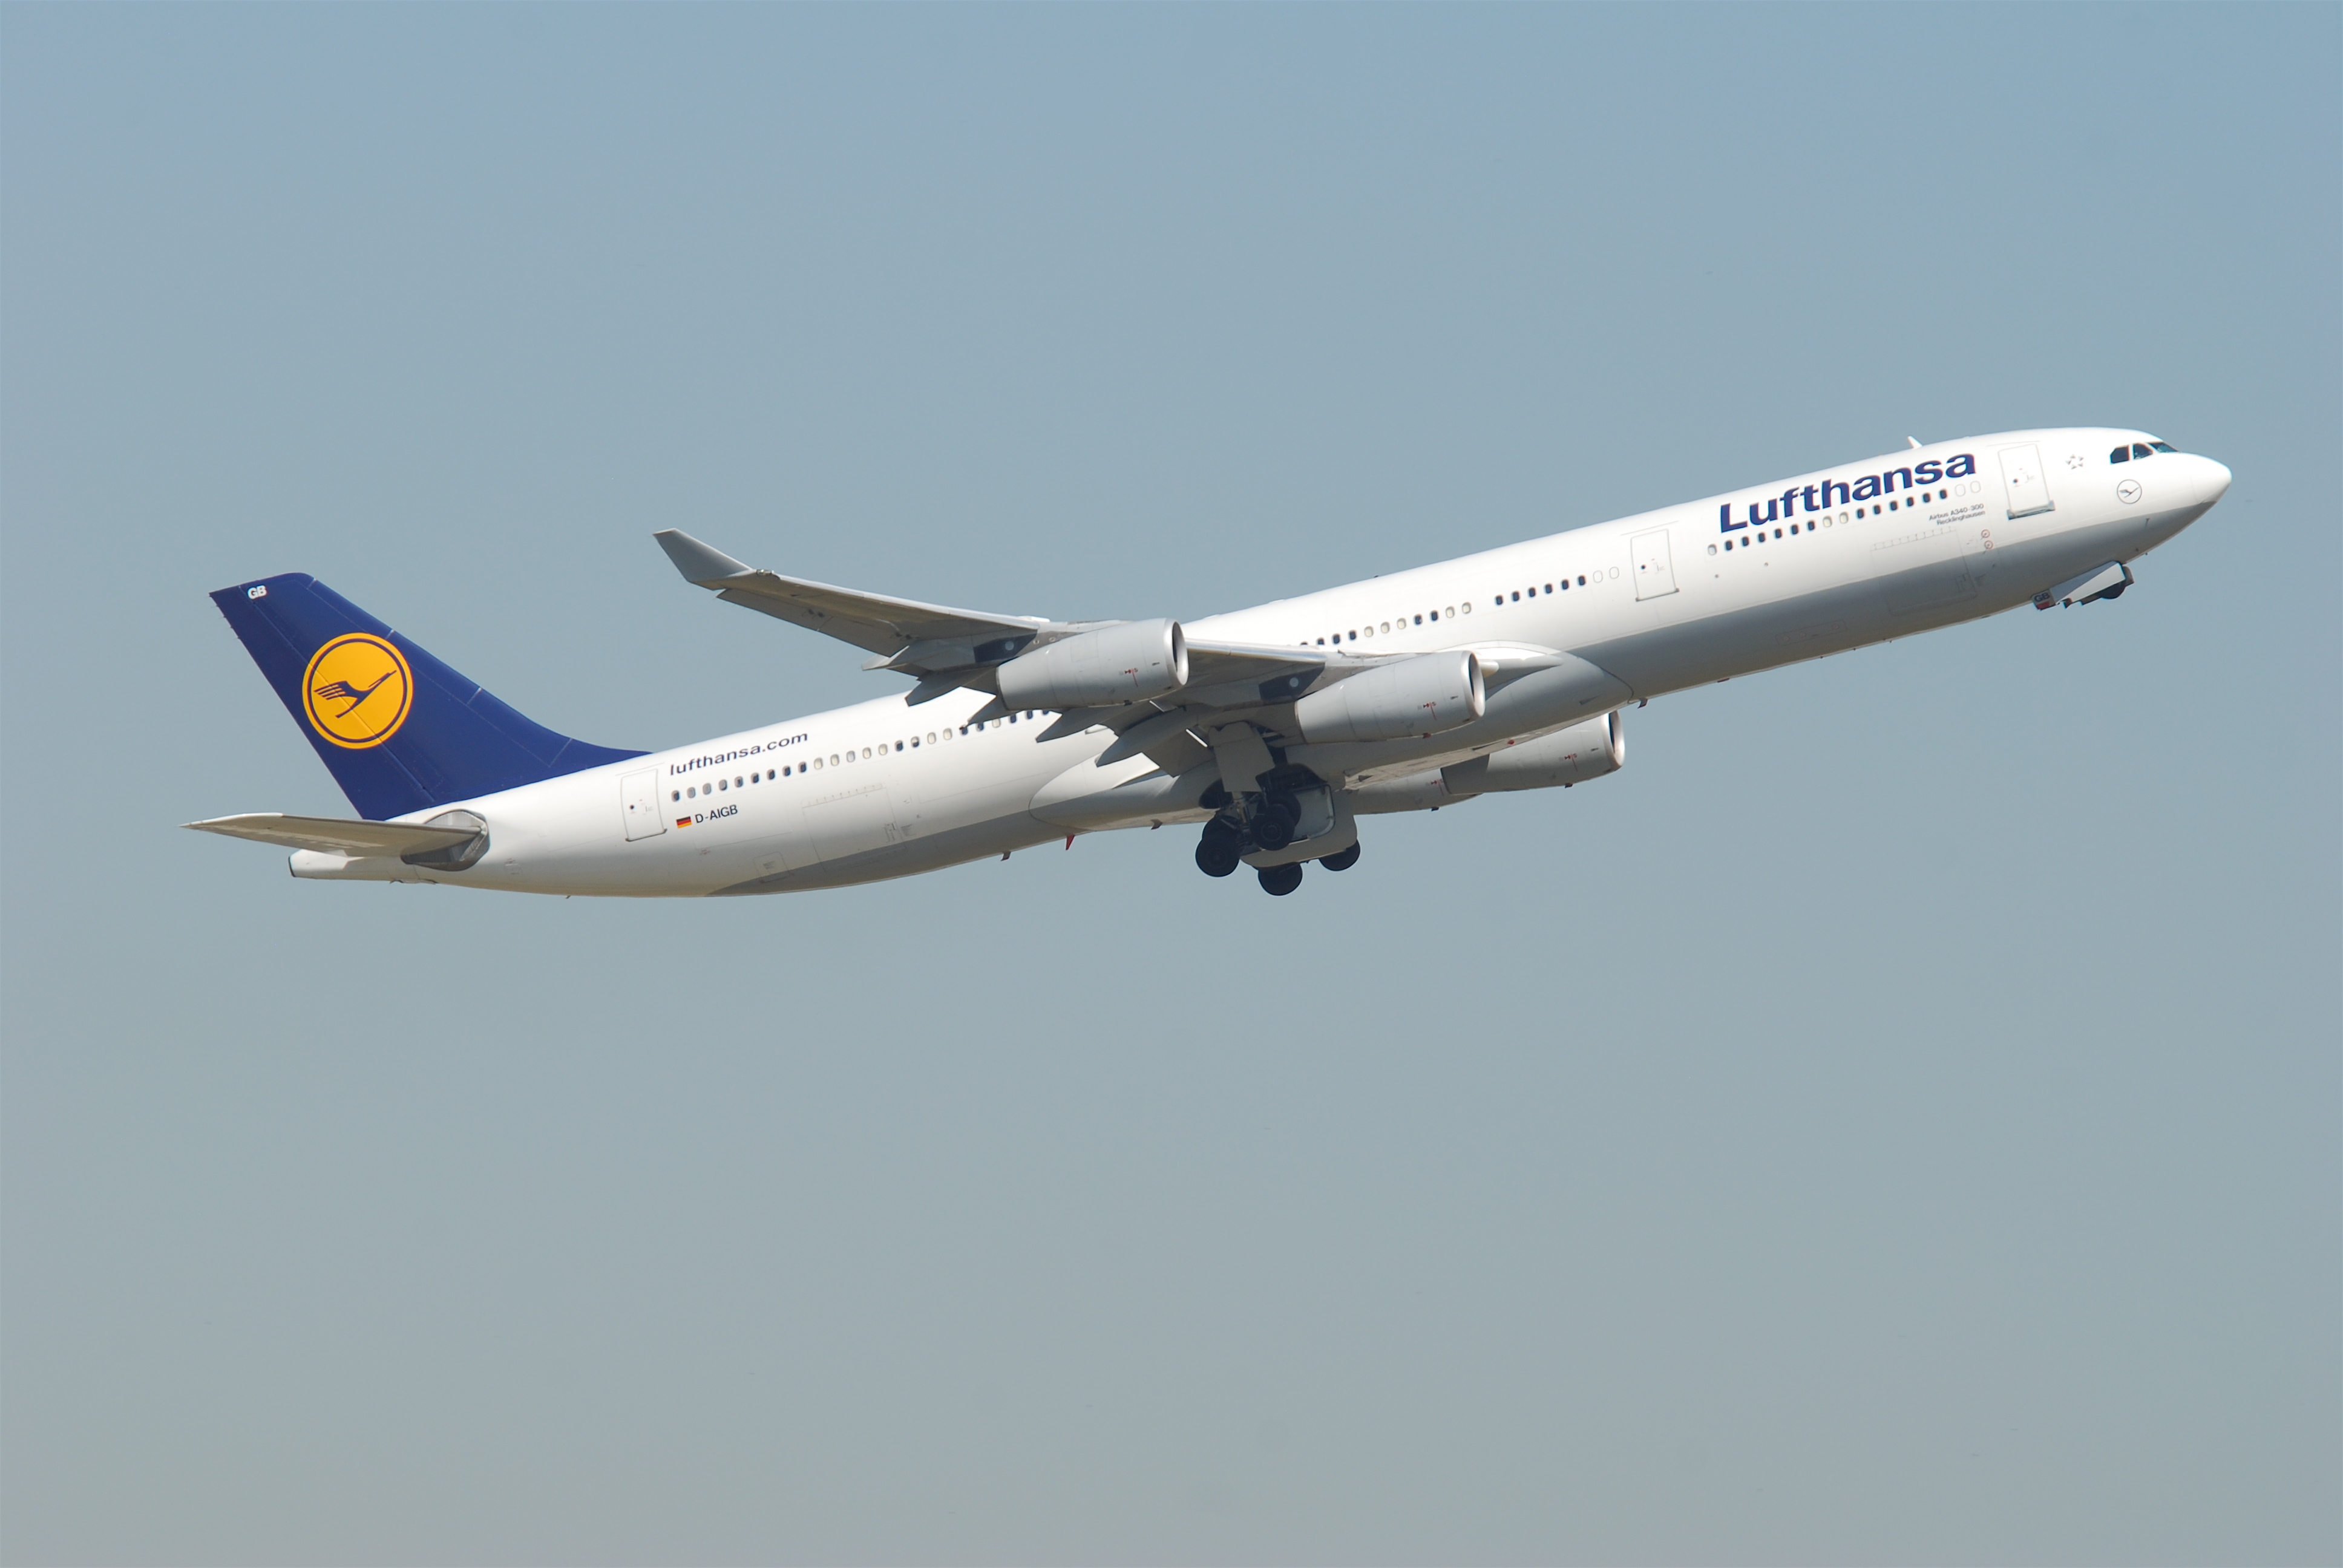 file lufthansa airbus a340 300 d aigb fra 581ee 4781694118 jpg wikipedia. Black Bedroom Furniture Sets. Home Design Ideas